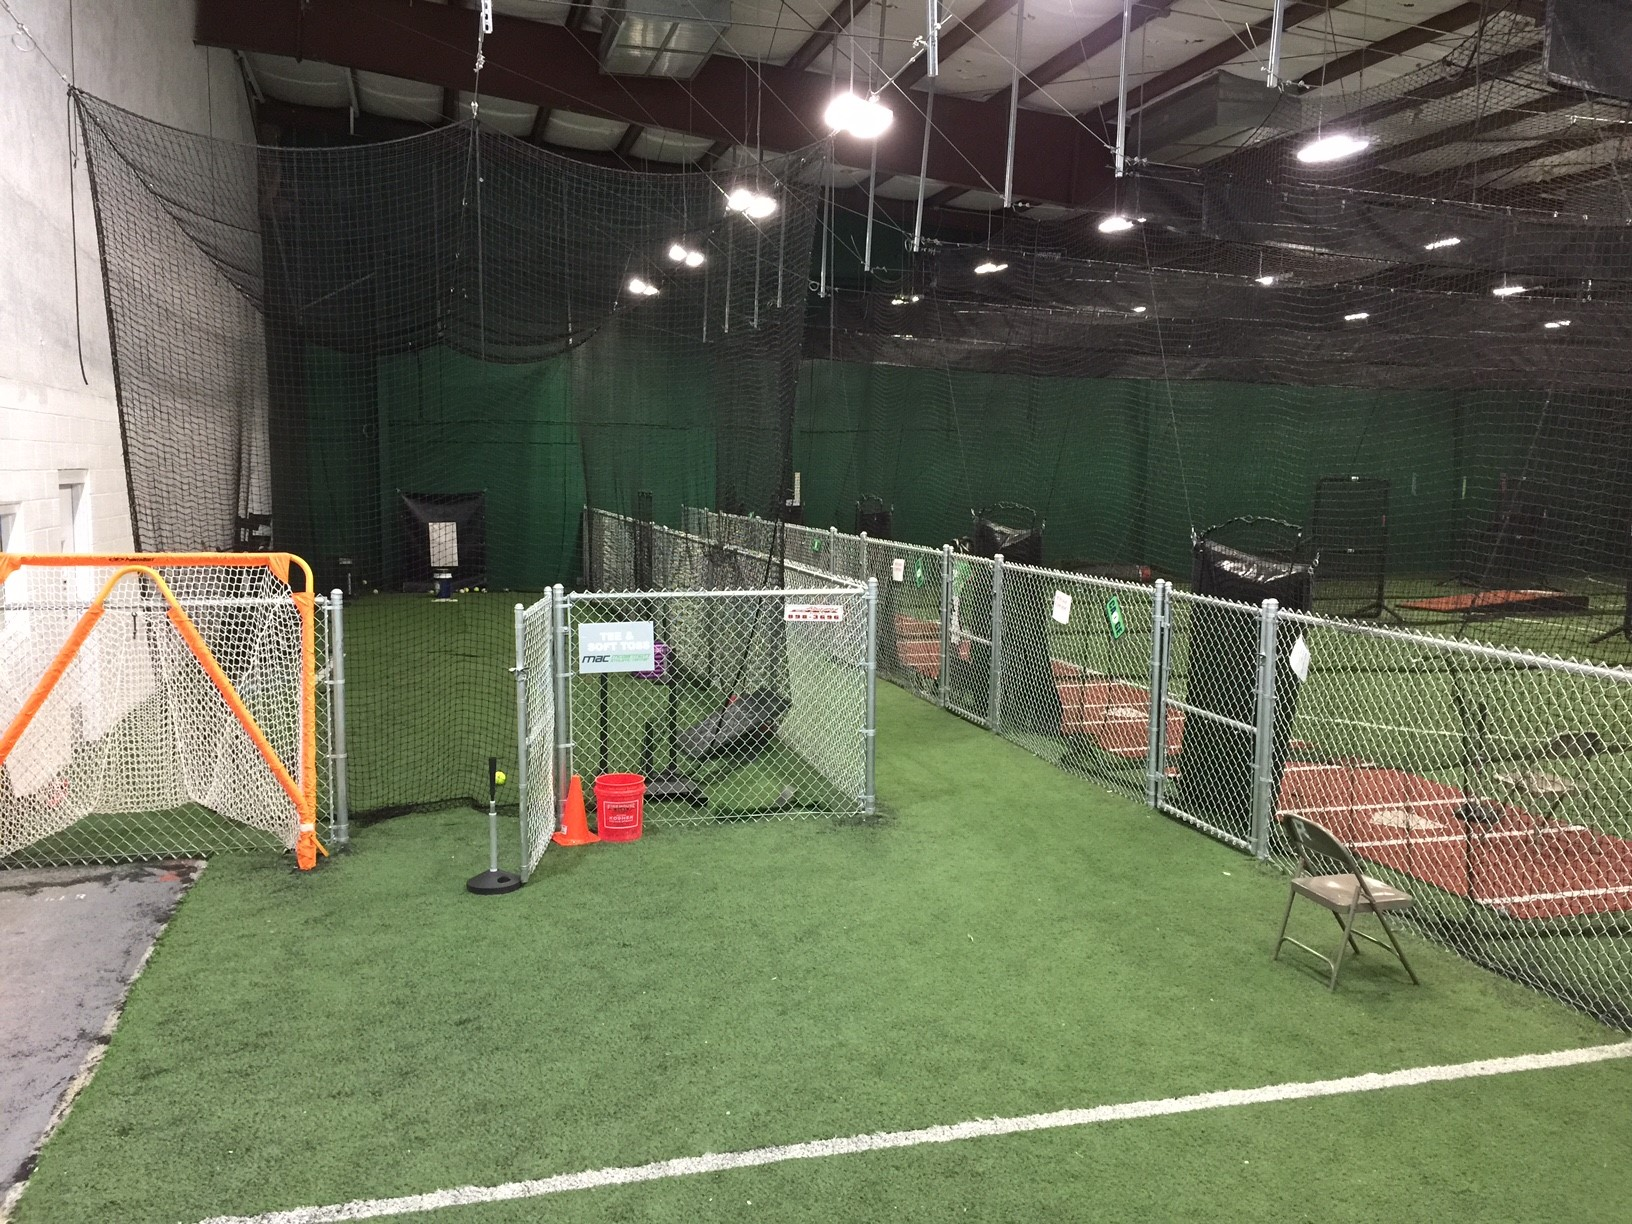 Baseball cages at McDermott Athletic